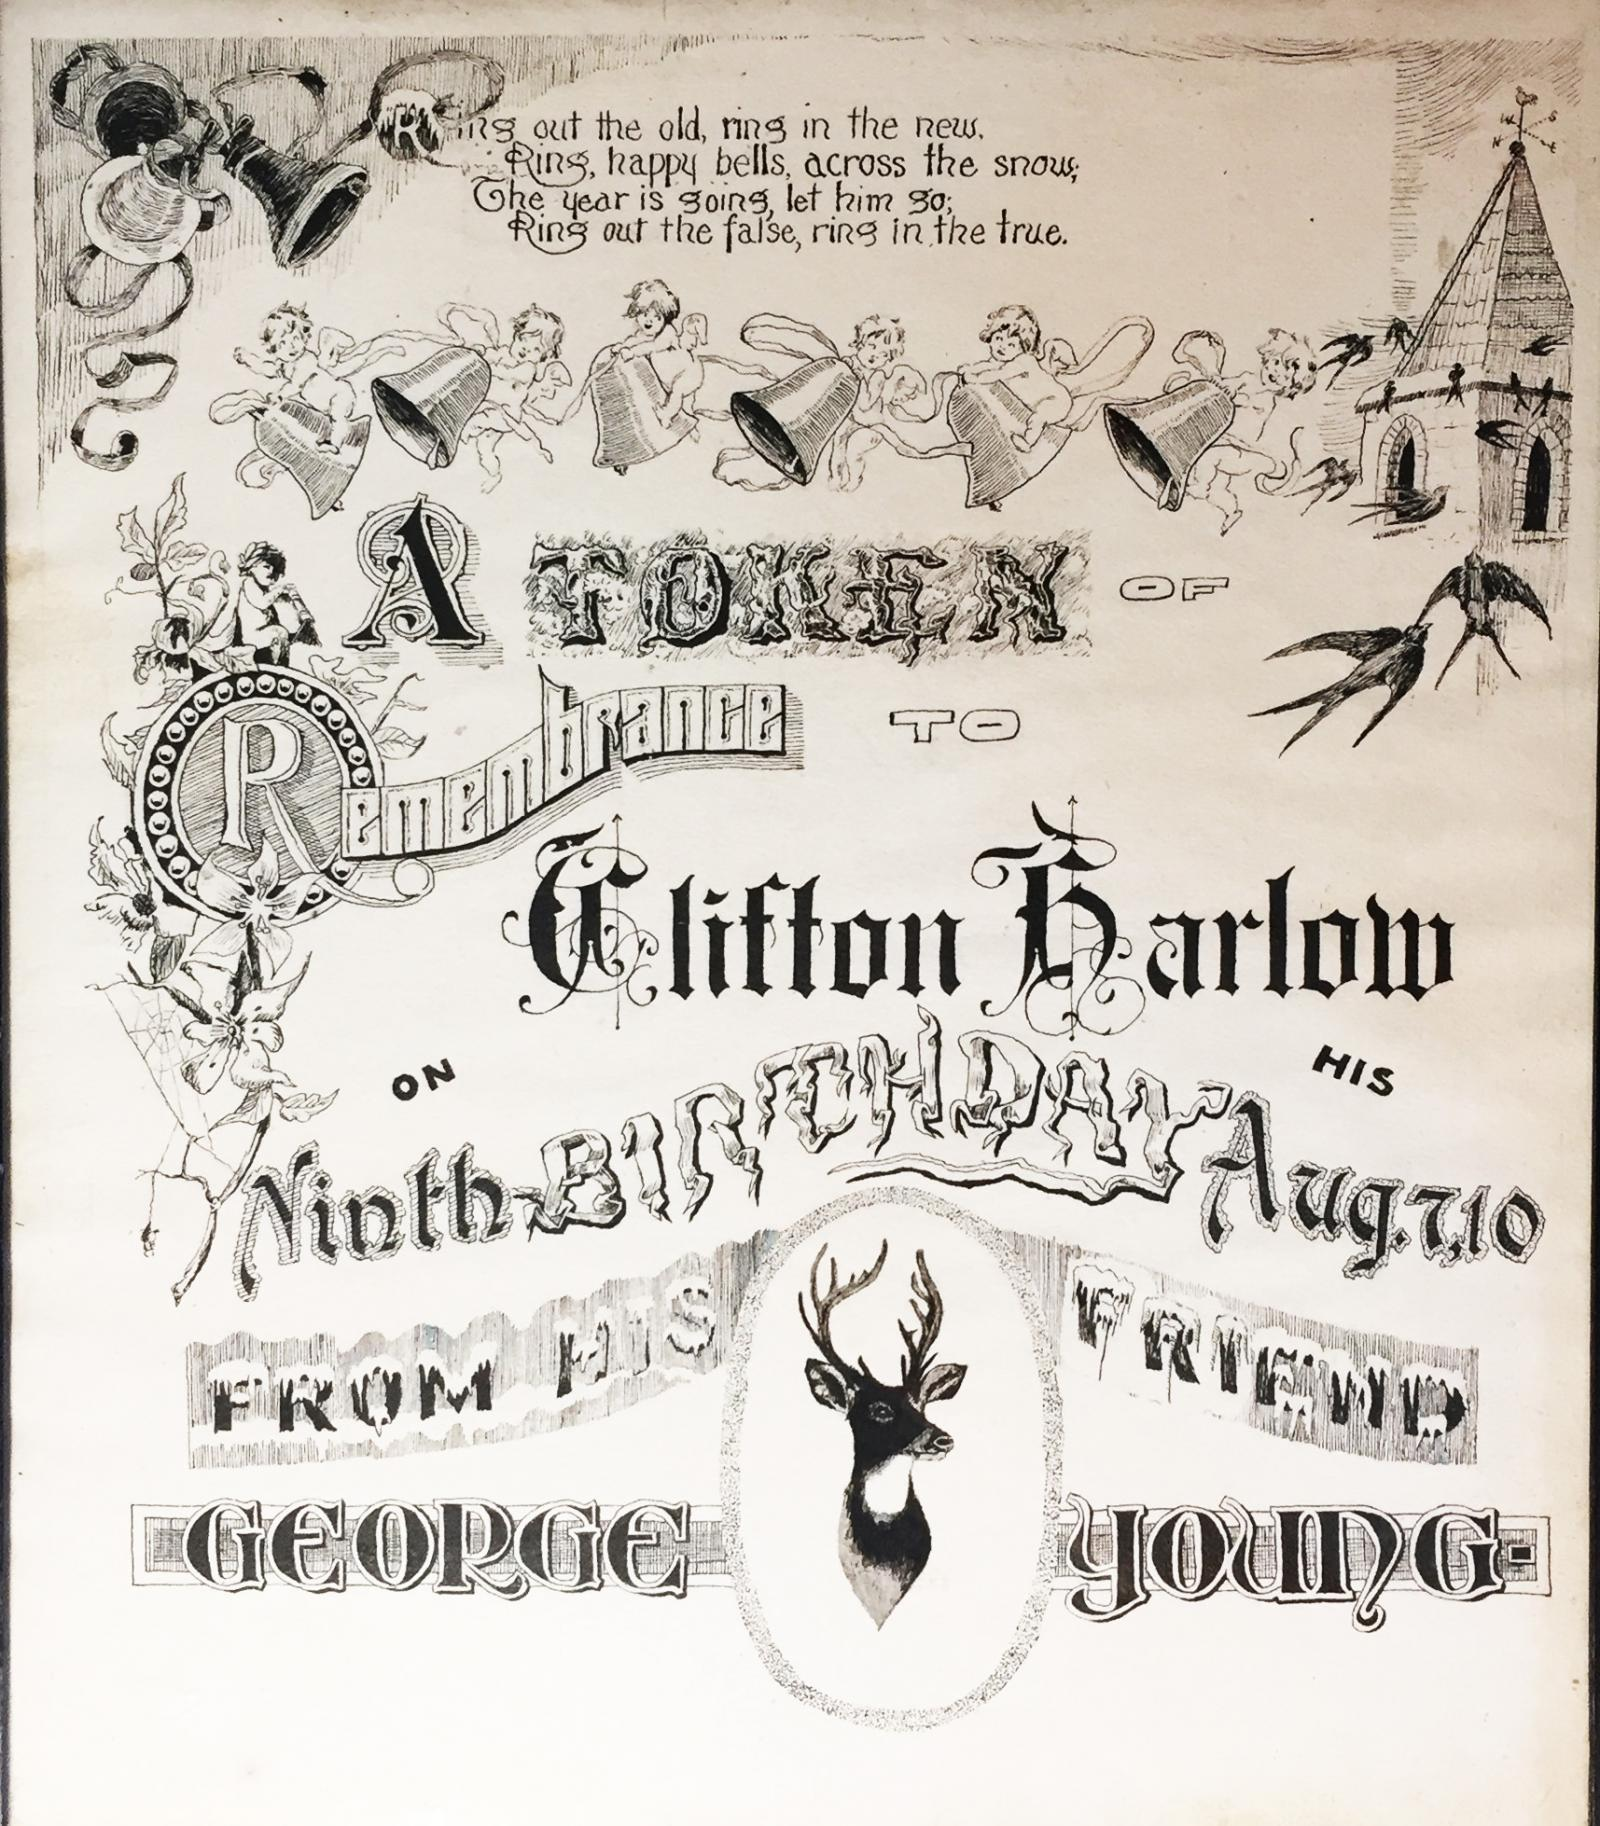 A remarkable piece of hand lettering and decoration